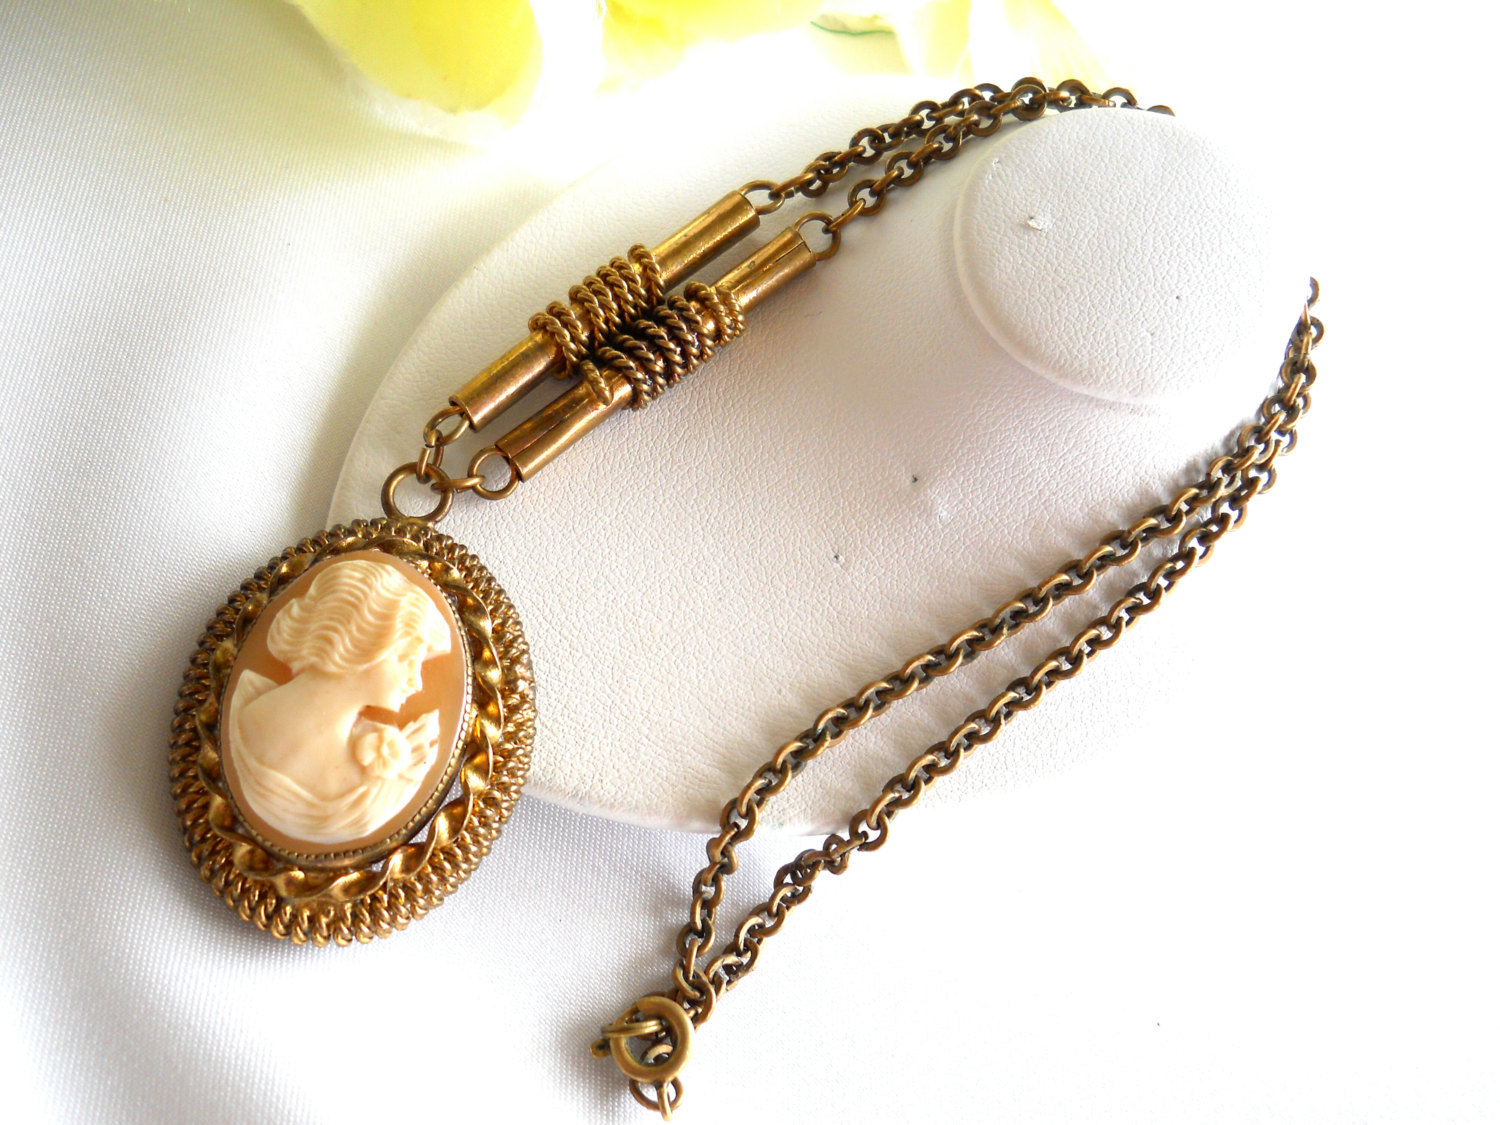 Carved Shell Cameo Pendant Necklace Victorian Style Vintage image 4